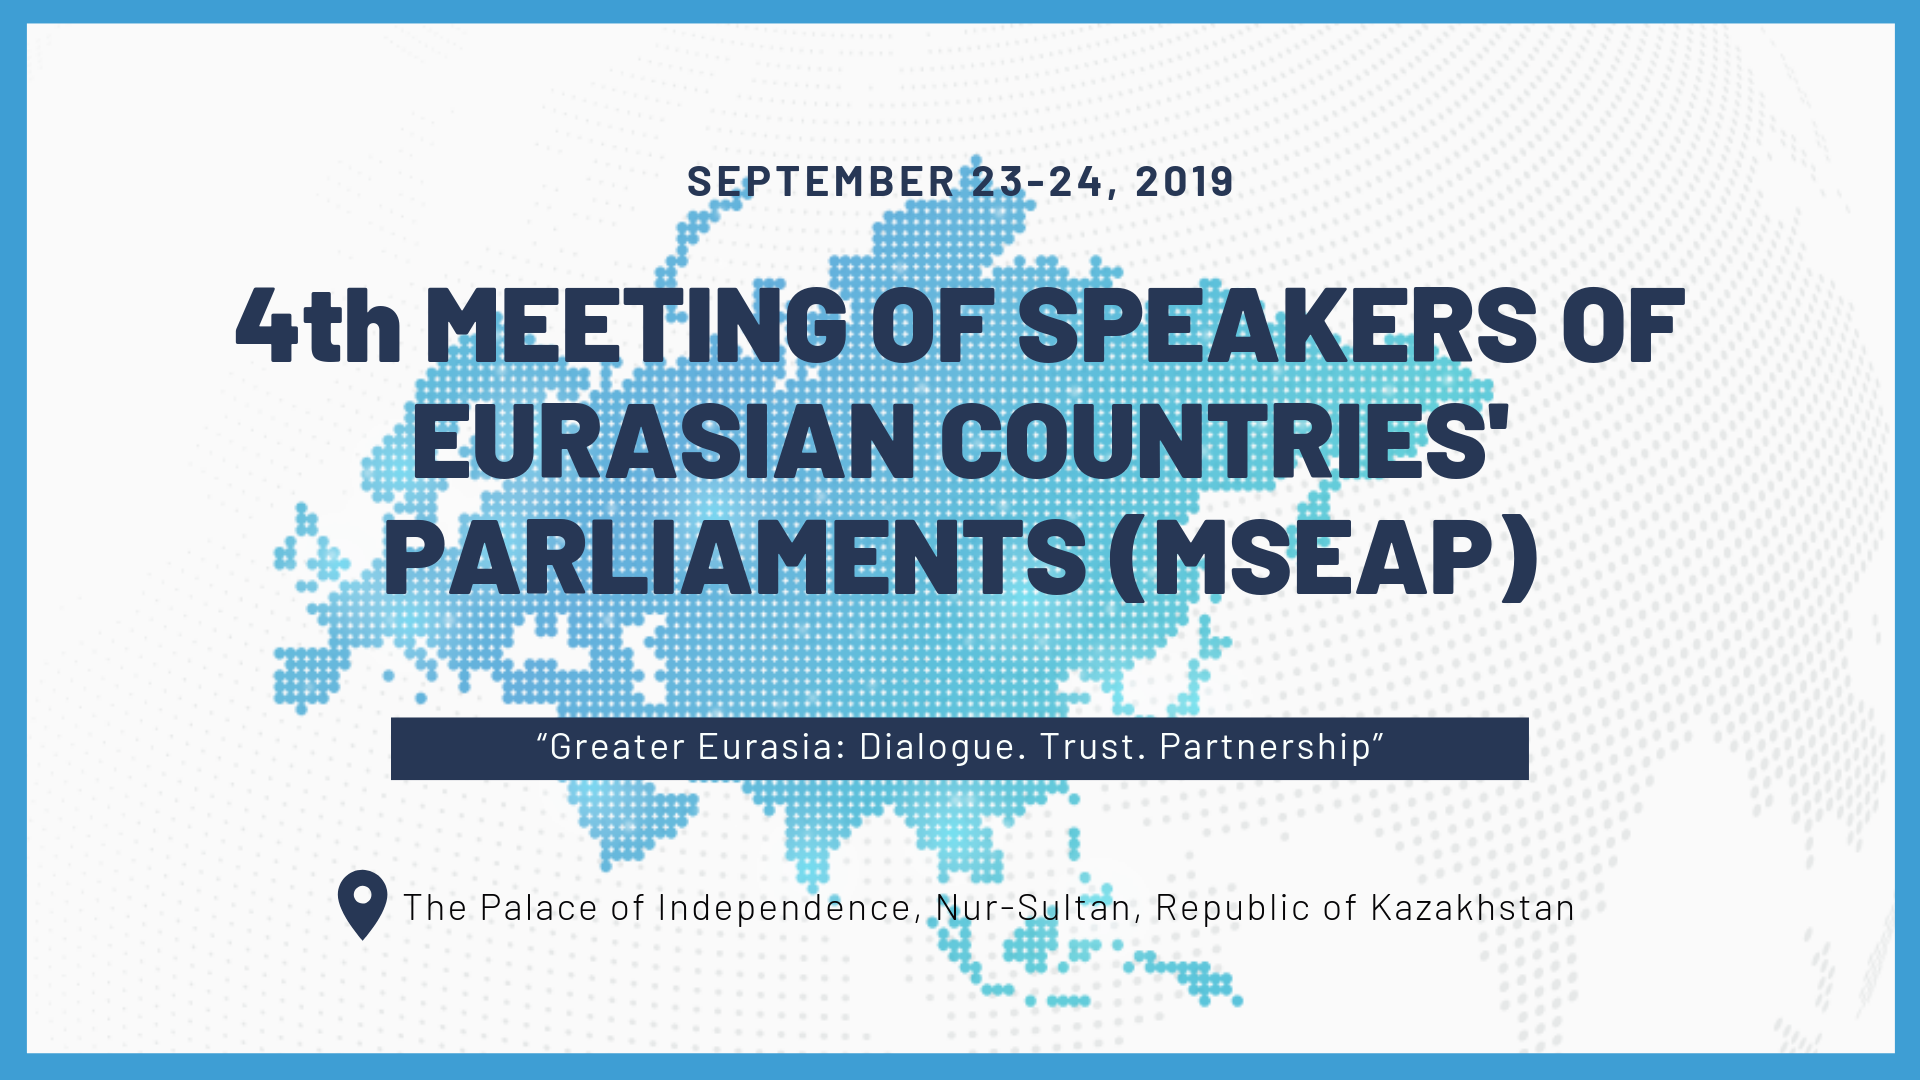 4th Meeting of Speakers of Eurasian Countries' Parliaments